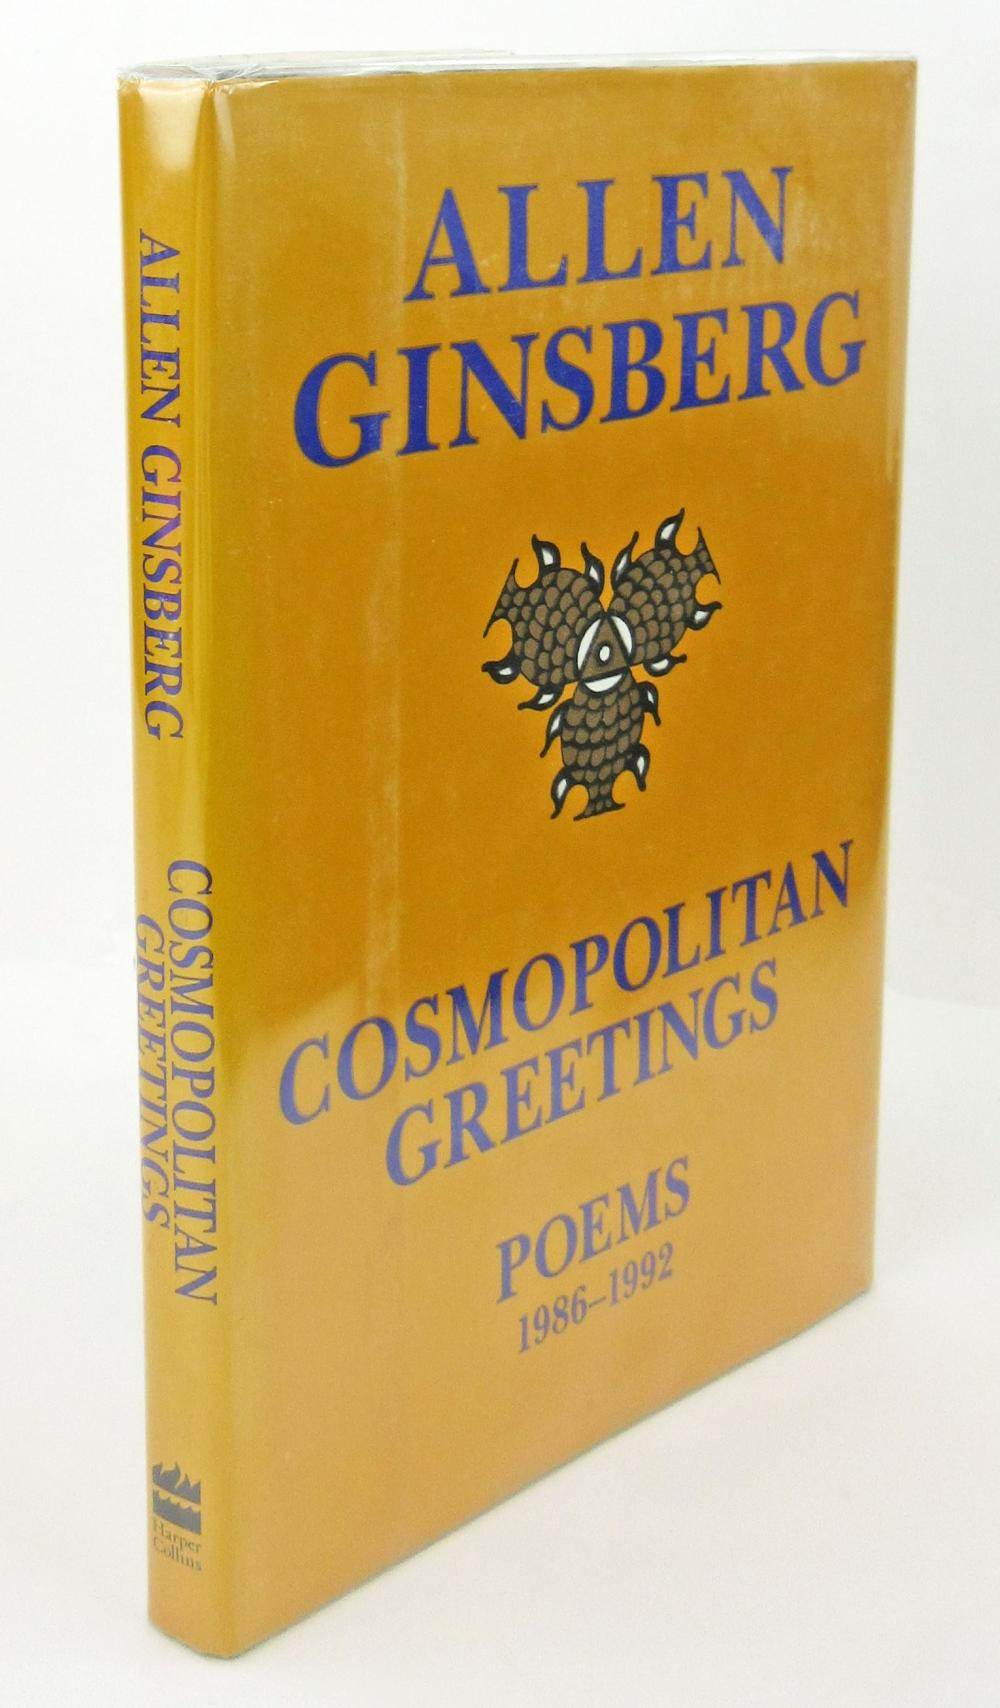 Cosmopolitan Greetings, Allen Ginsburg Signed 3X With A Drawing. First Printing